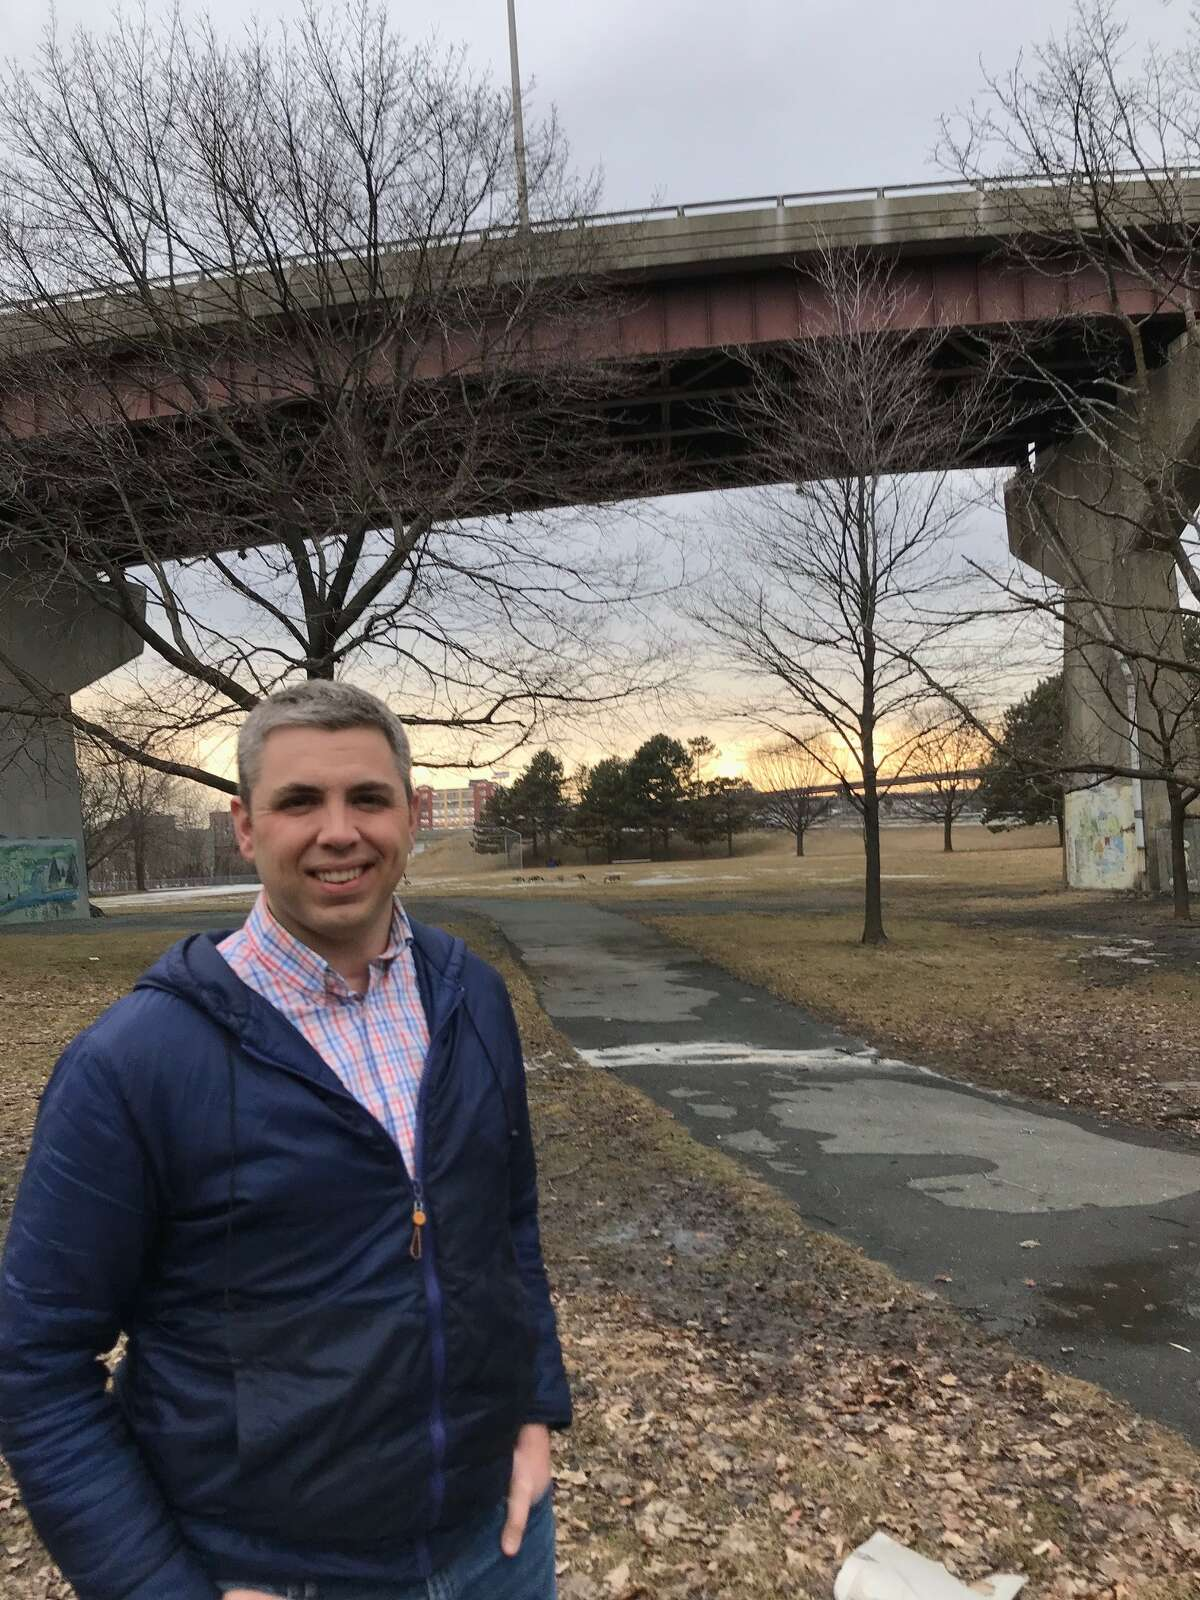 Local historian Matt Malette at the former Riverside Park on what had been Bonacker Island, where Roger Connor hit the first grand slam in Major League Baseball history for the Troy Trojans on Sept. 10, 1881.